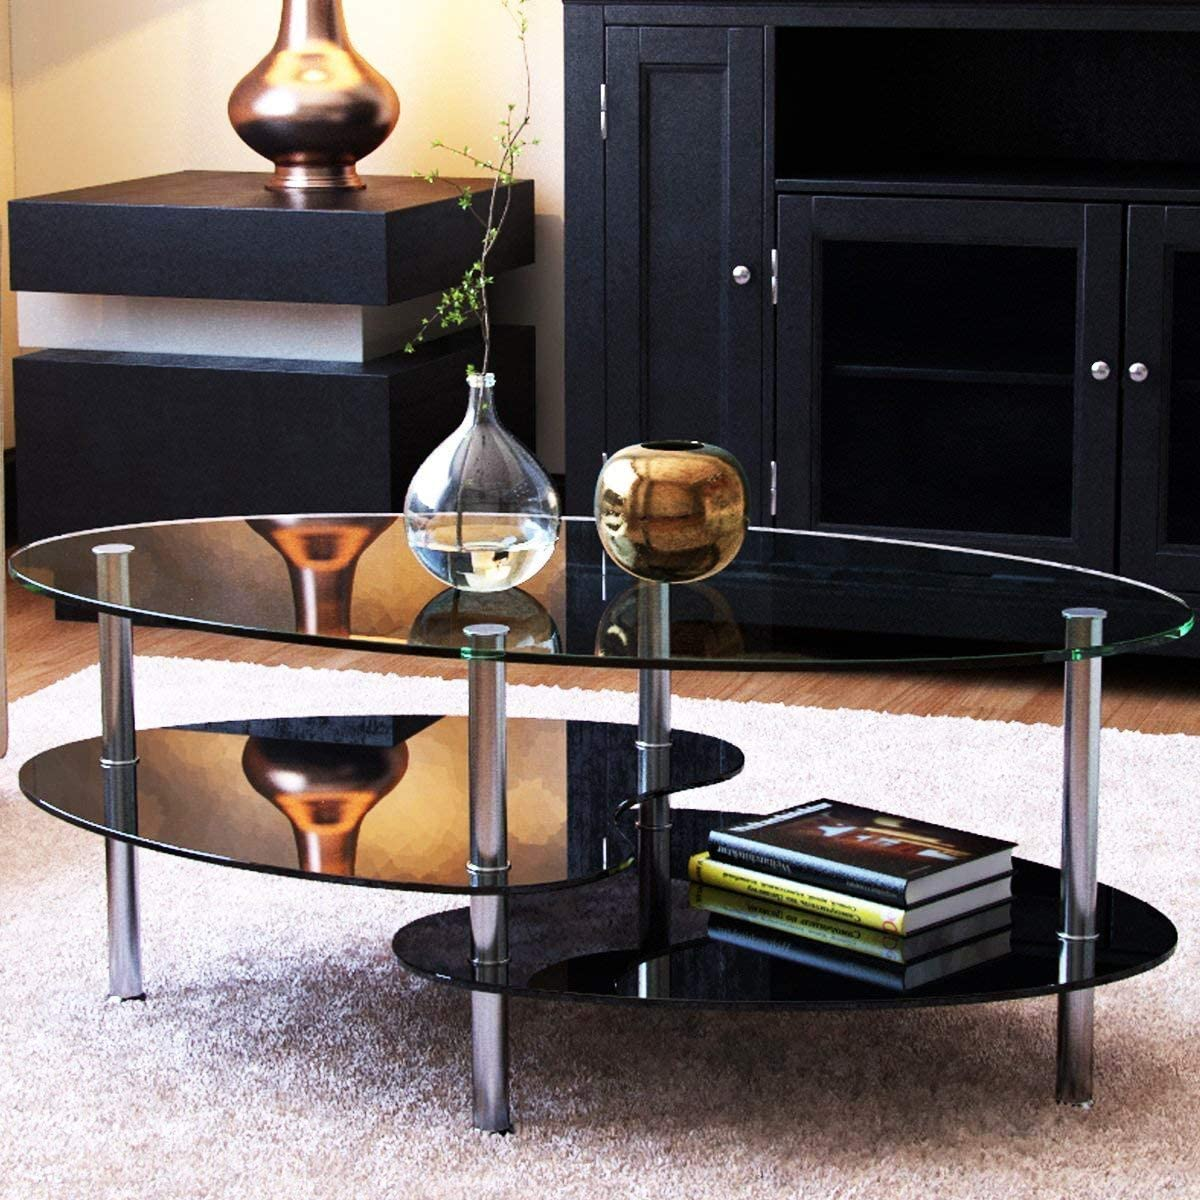 Amazon Com Ryan Rove Orion Oval Two Tier Glass Coffee Table Coffee Tables For Living Room Kitchen Bedroom And Office Glass Shelves Under Desk Storage Clear And Black Glass